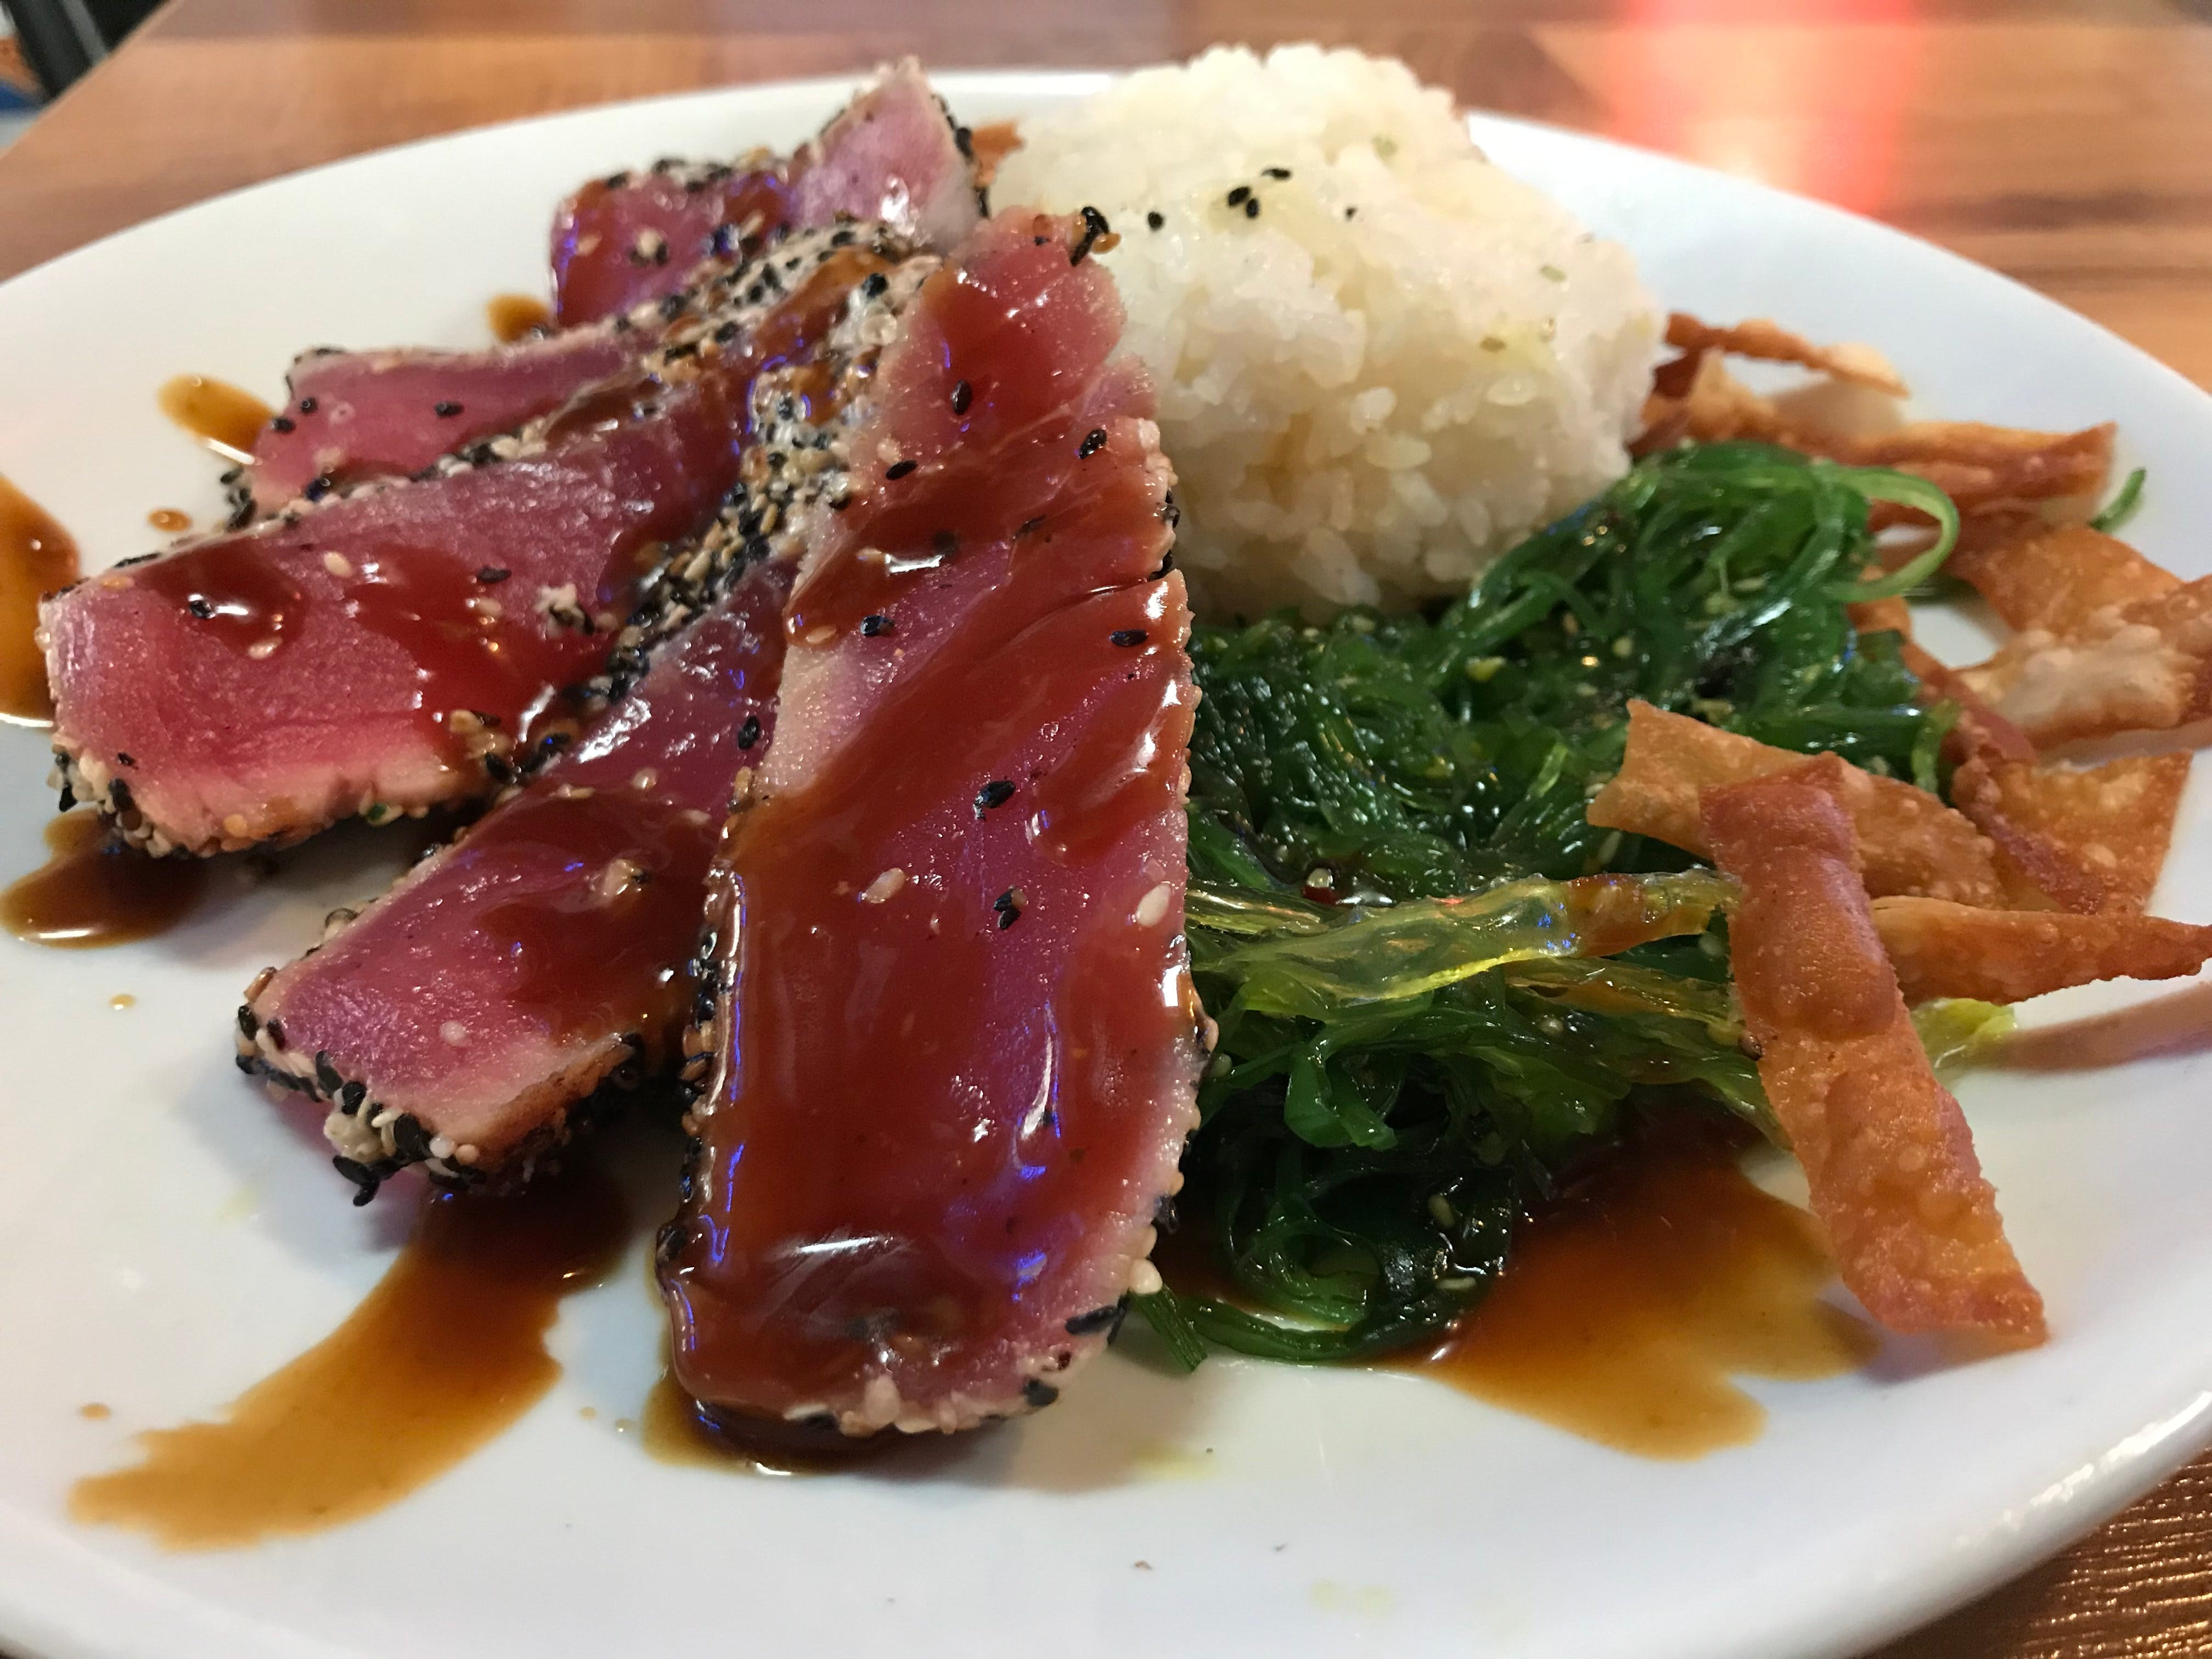 Hollywood's Roadhouse chefs Dan Gruncel and Dave Olivas have been hard at work lately coming up with new specials for the menu such as the Seared Ahi Tuna with seaweed salad, sticky rice and wonton strips.